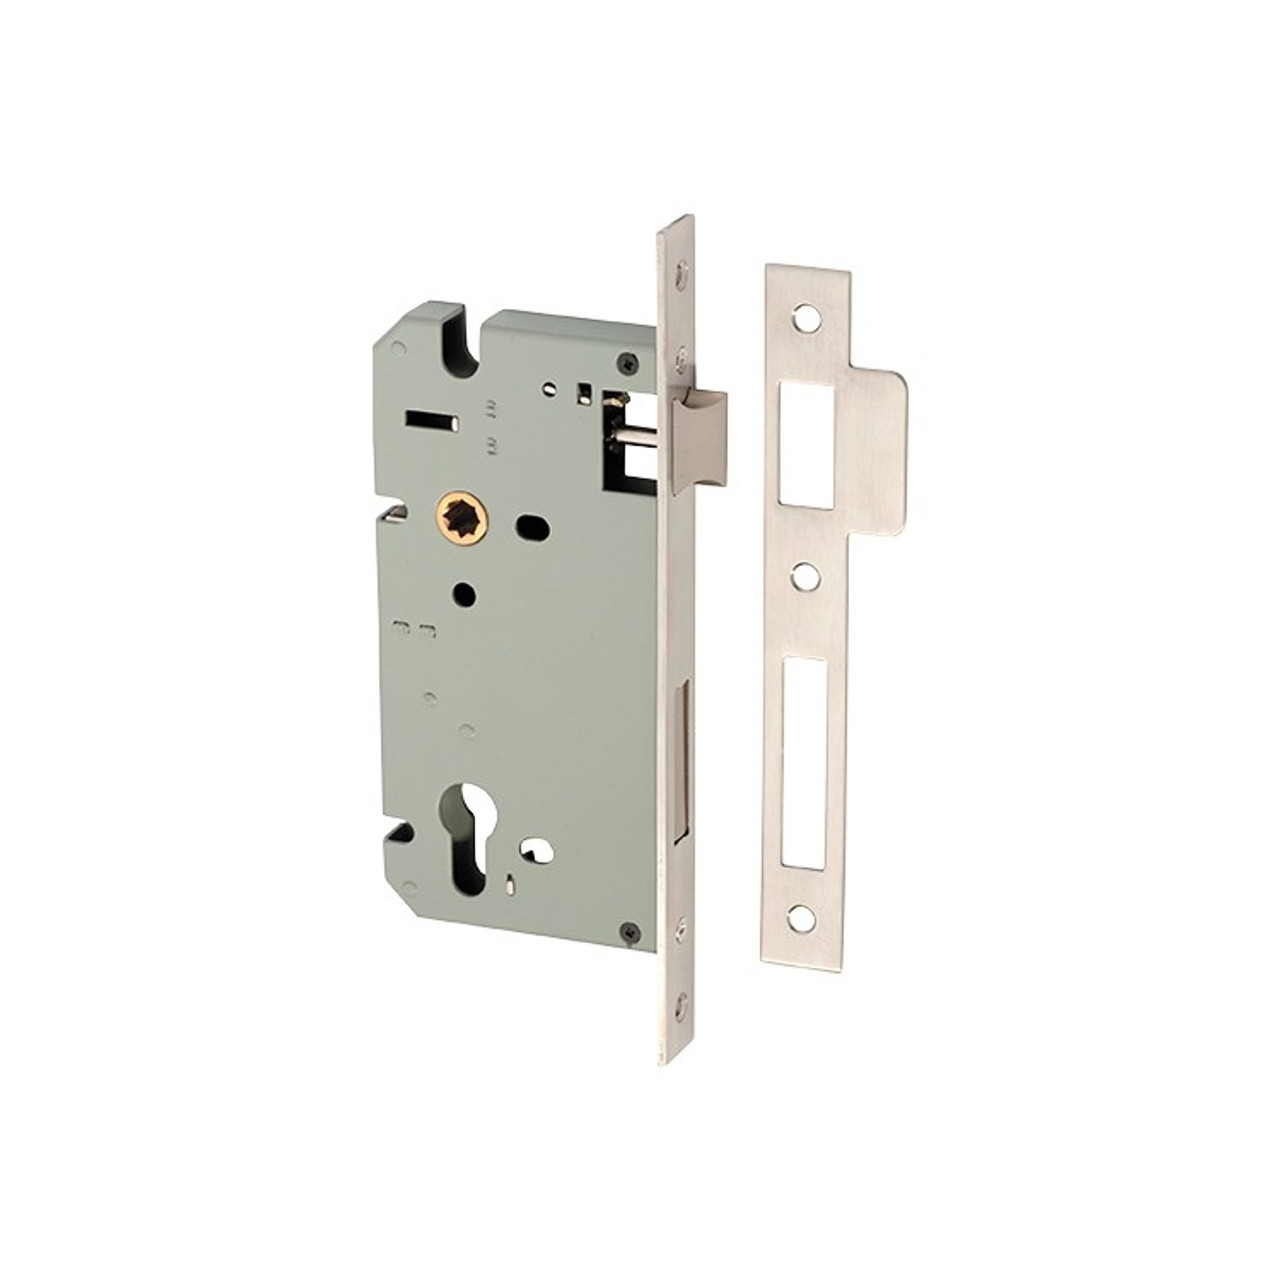 Tradco Mortice Lock Euro SS 60mm Backset Stainless Steel 8504